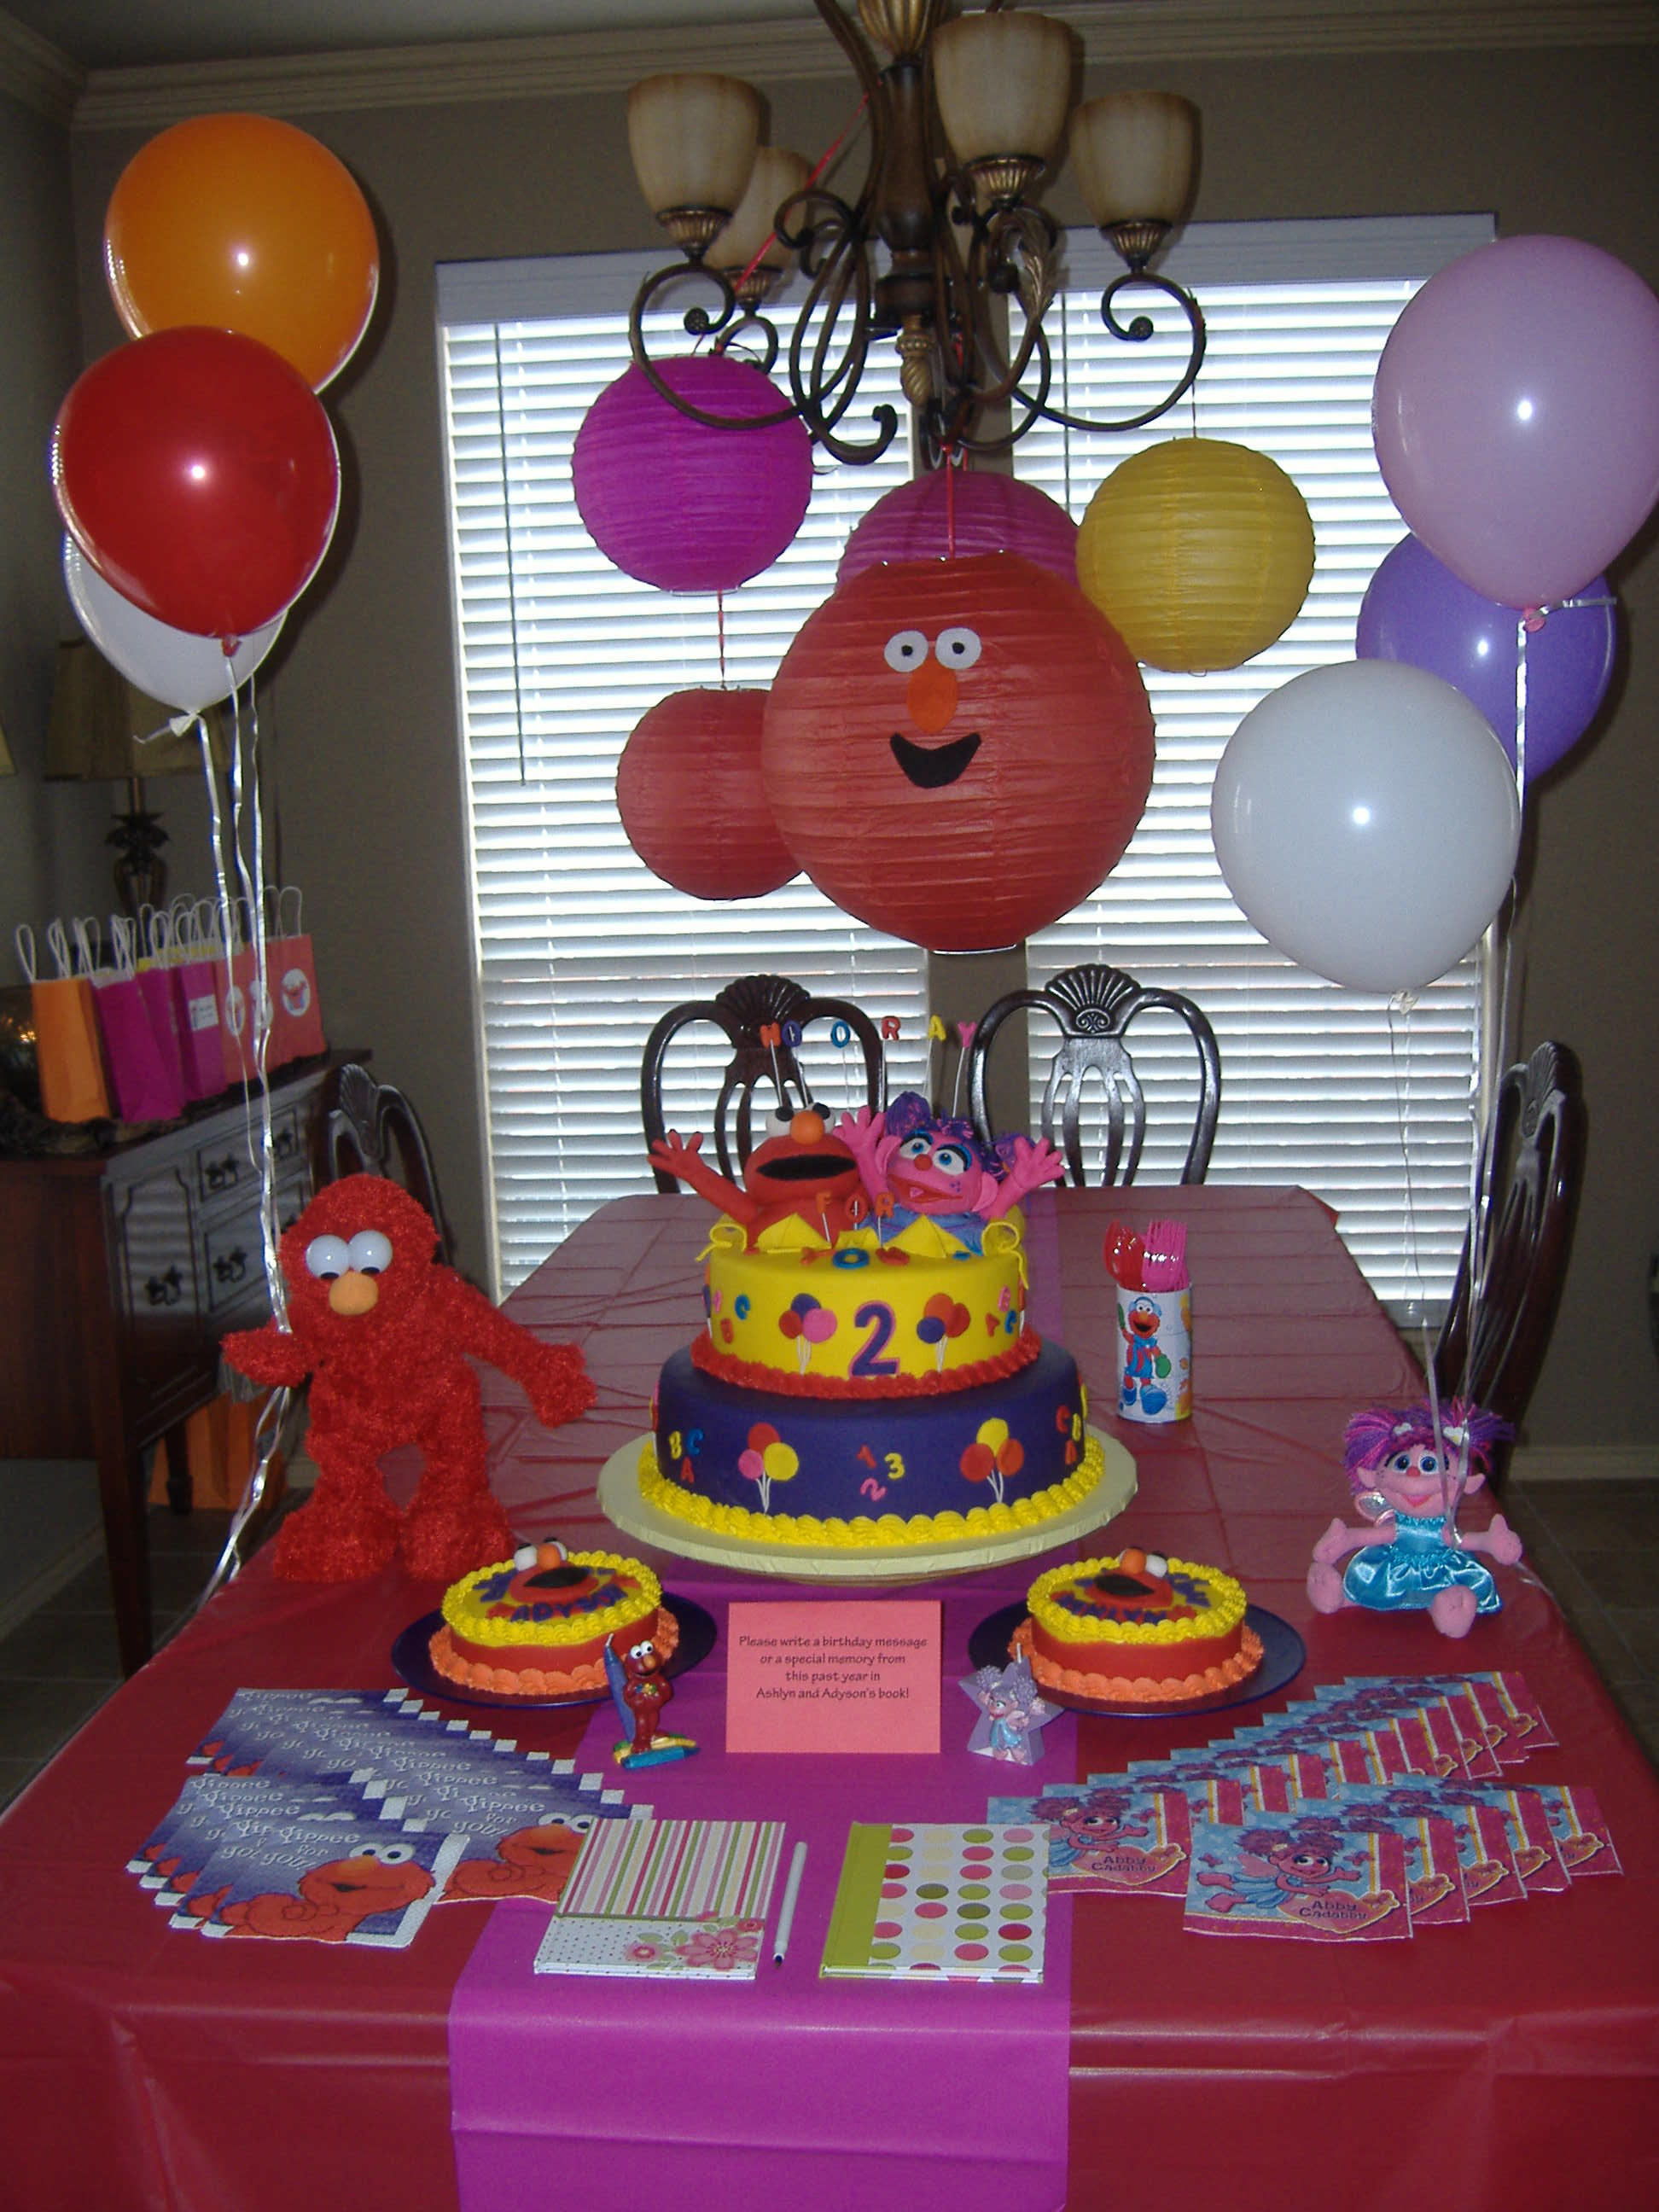 Best ideas about Elmo Birthday Party . Save or Pin Elmo and Abby Party Now.